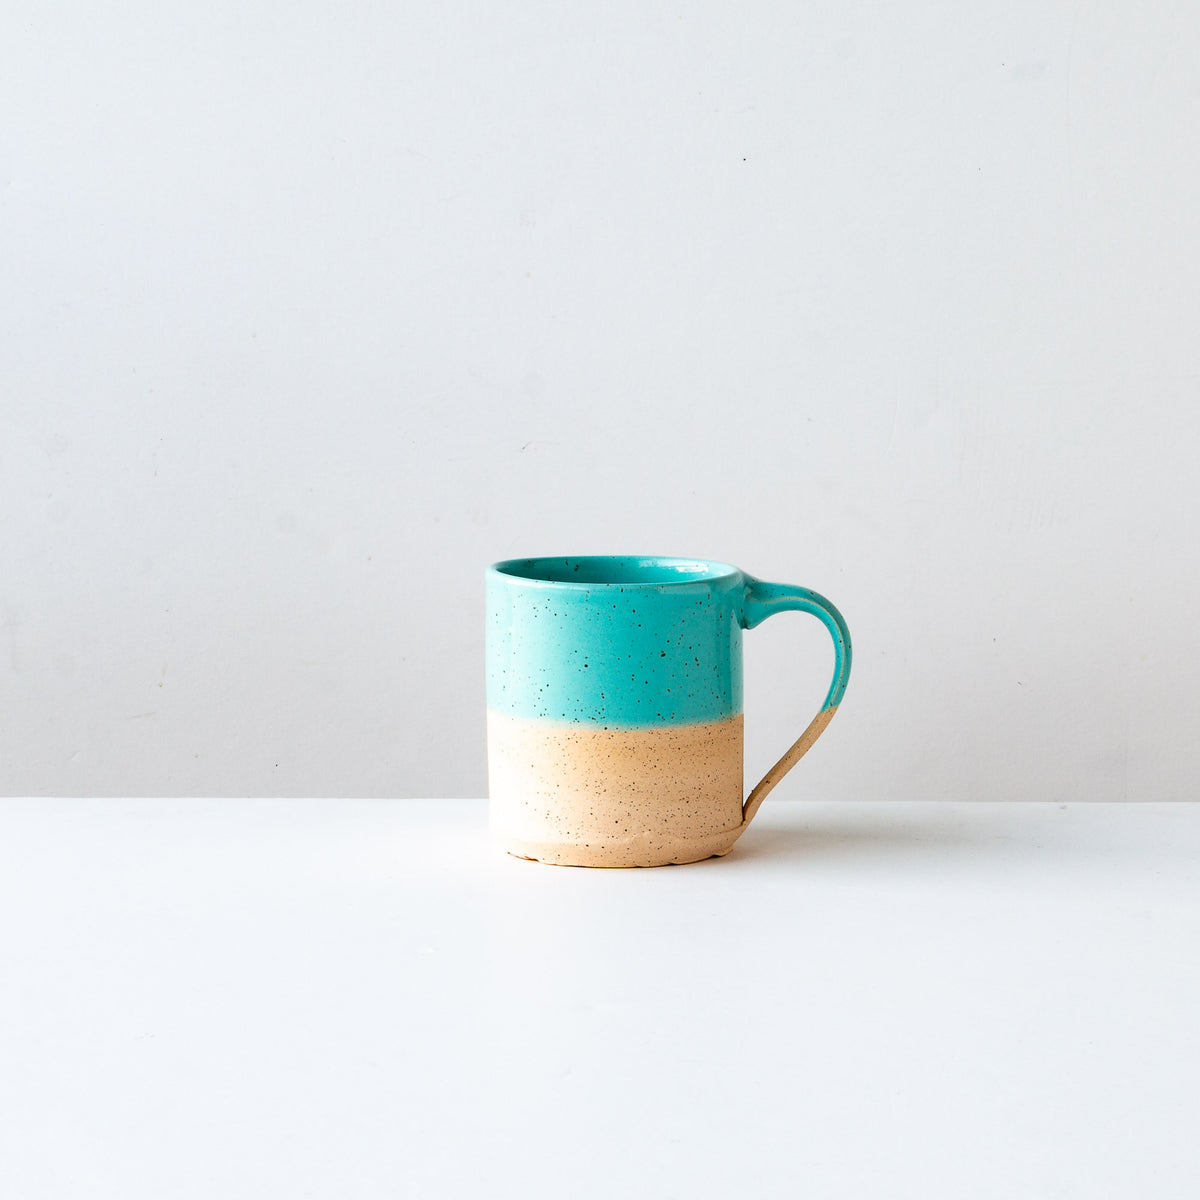 Turquoise Glaze - Handcrafted Speckled Stoneware Small Mug - Sold by Chic & Basta